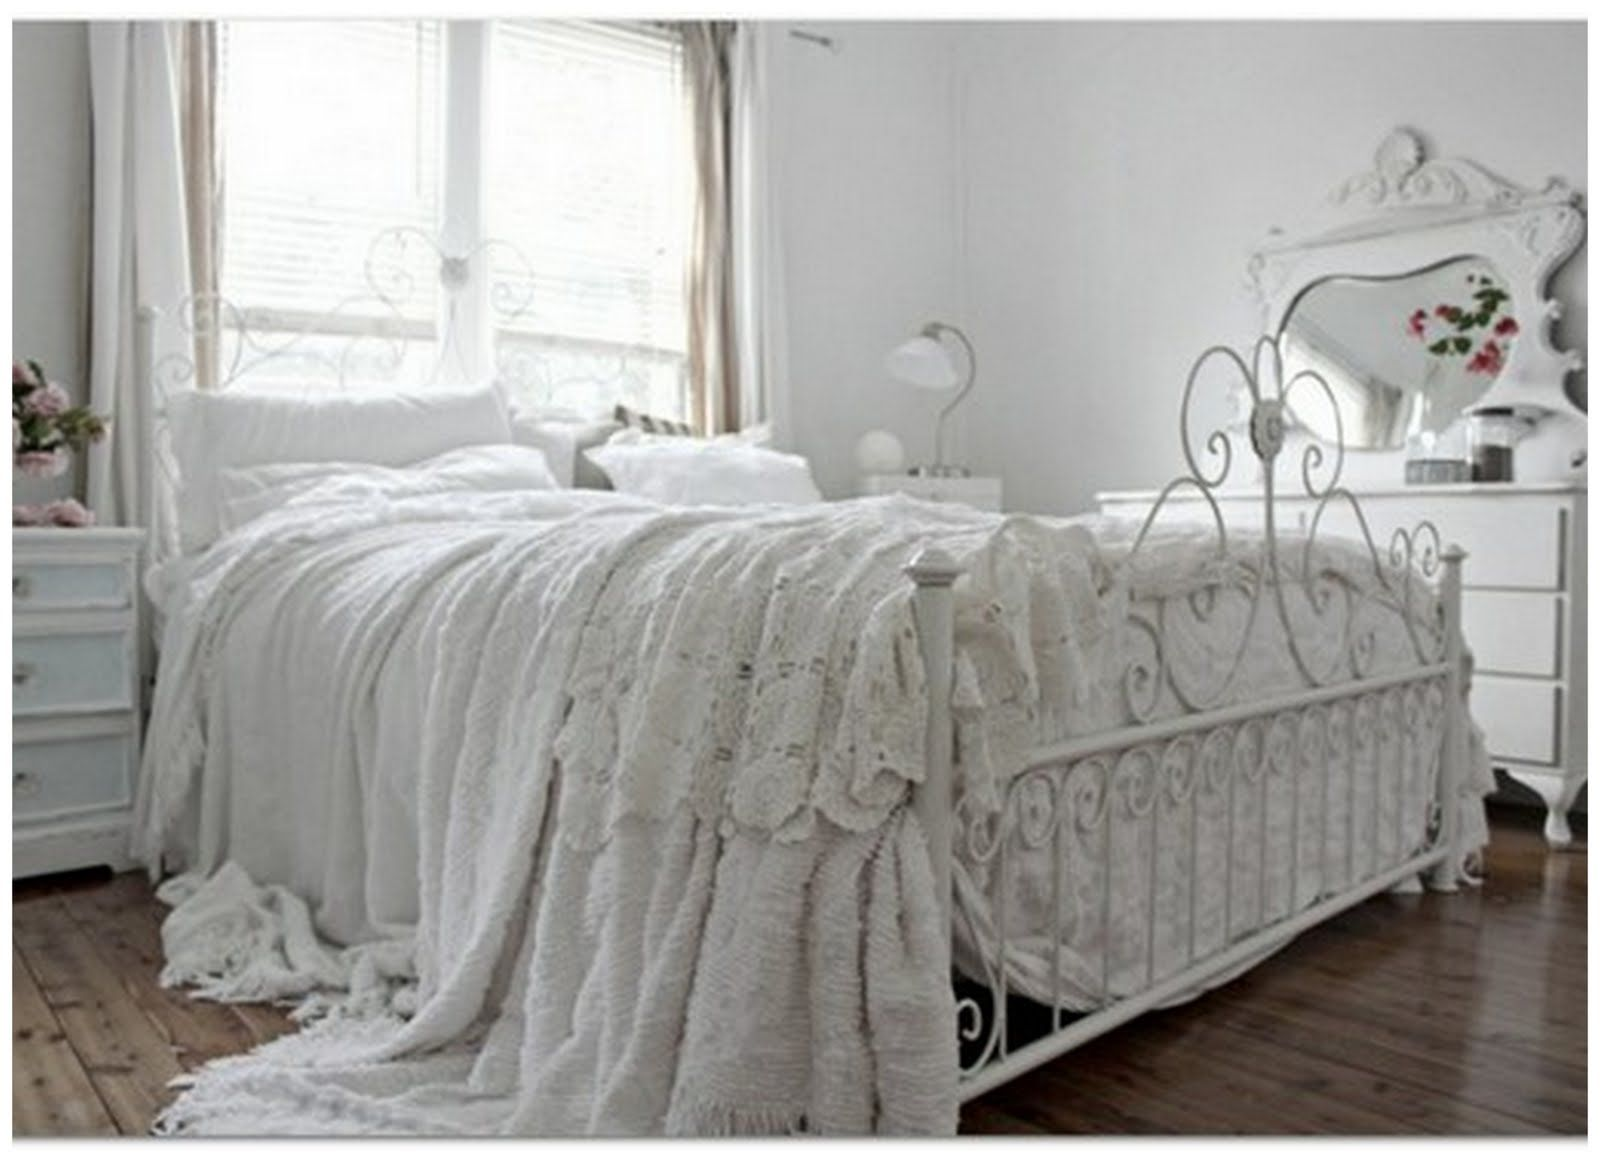 Country Chic Bedroom Image Result For White Wrought Iron Bed  Home  Pinterest  Bed